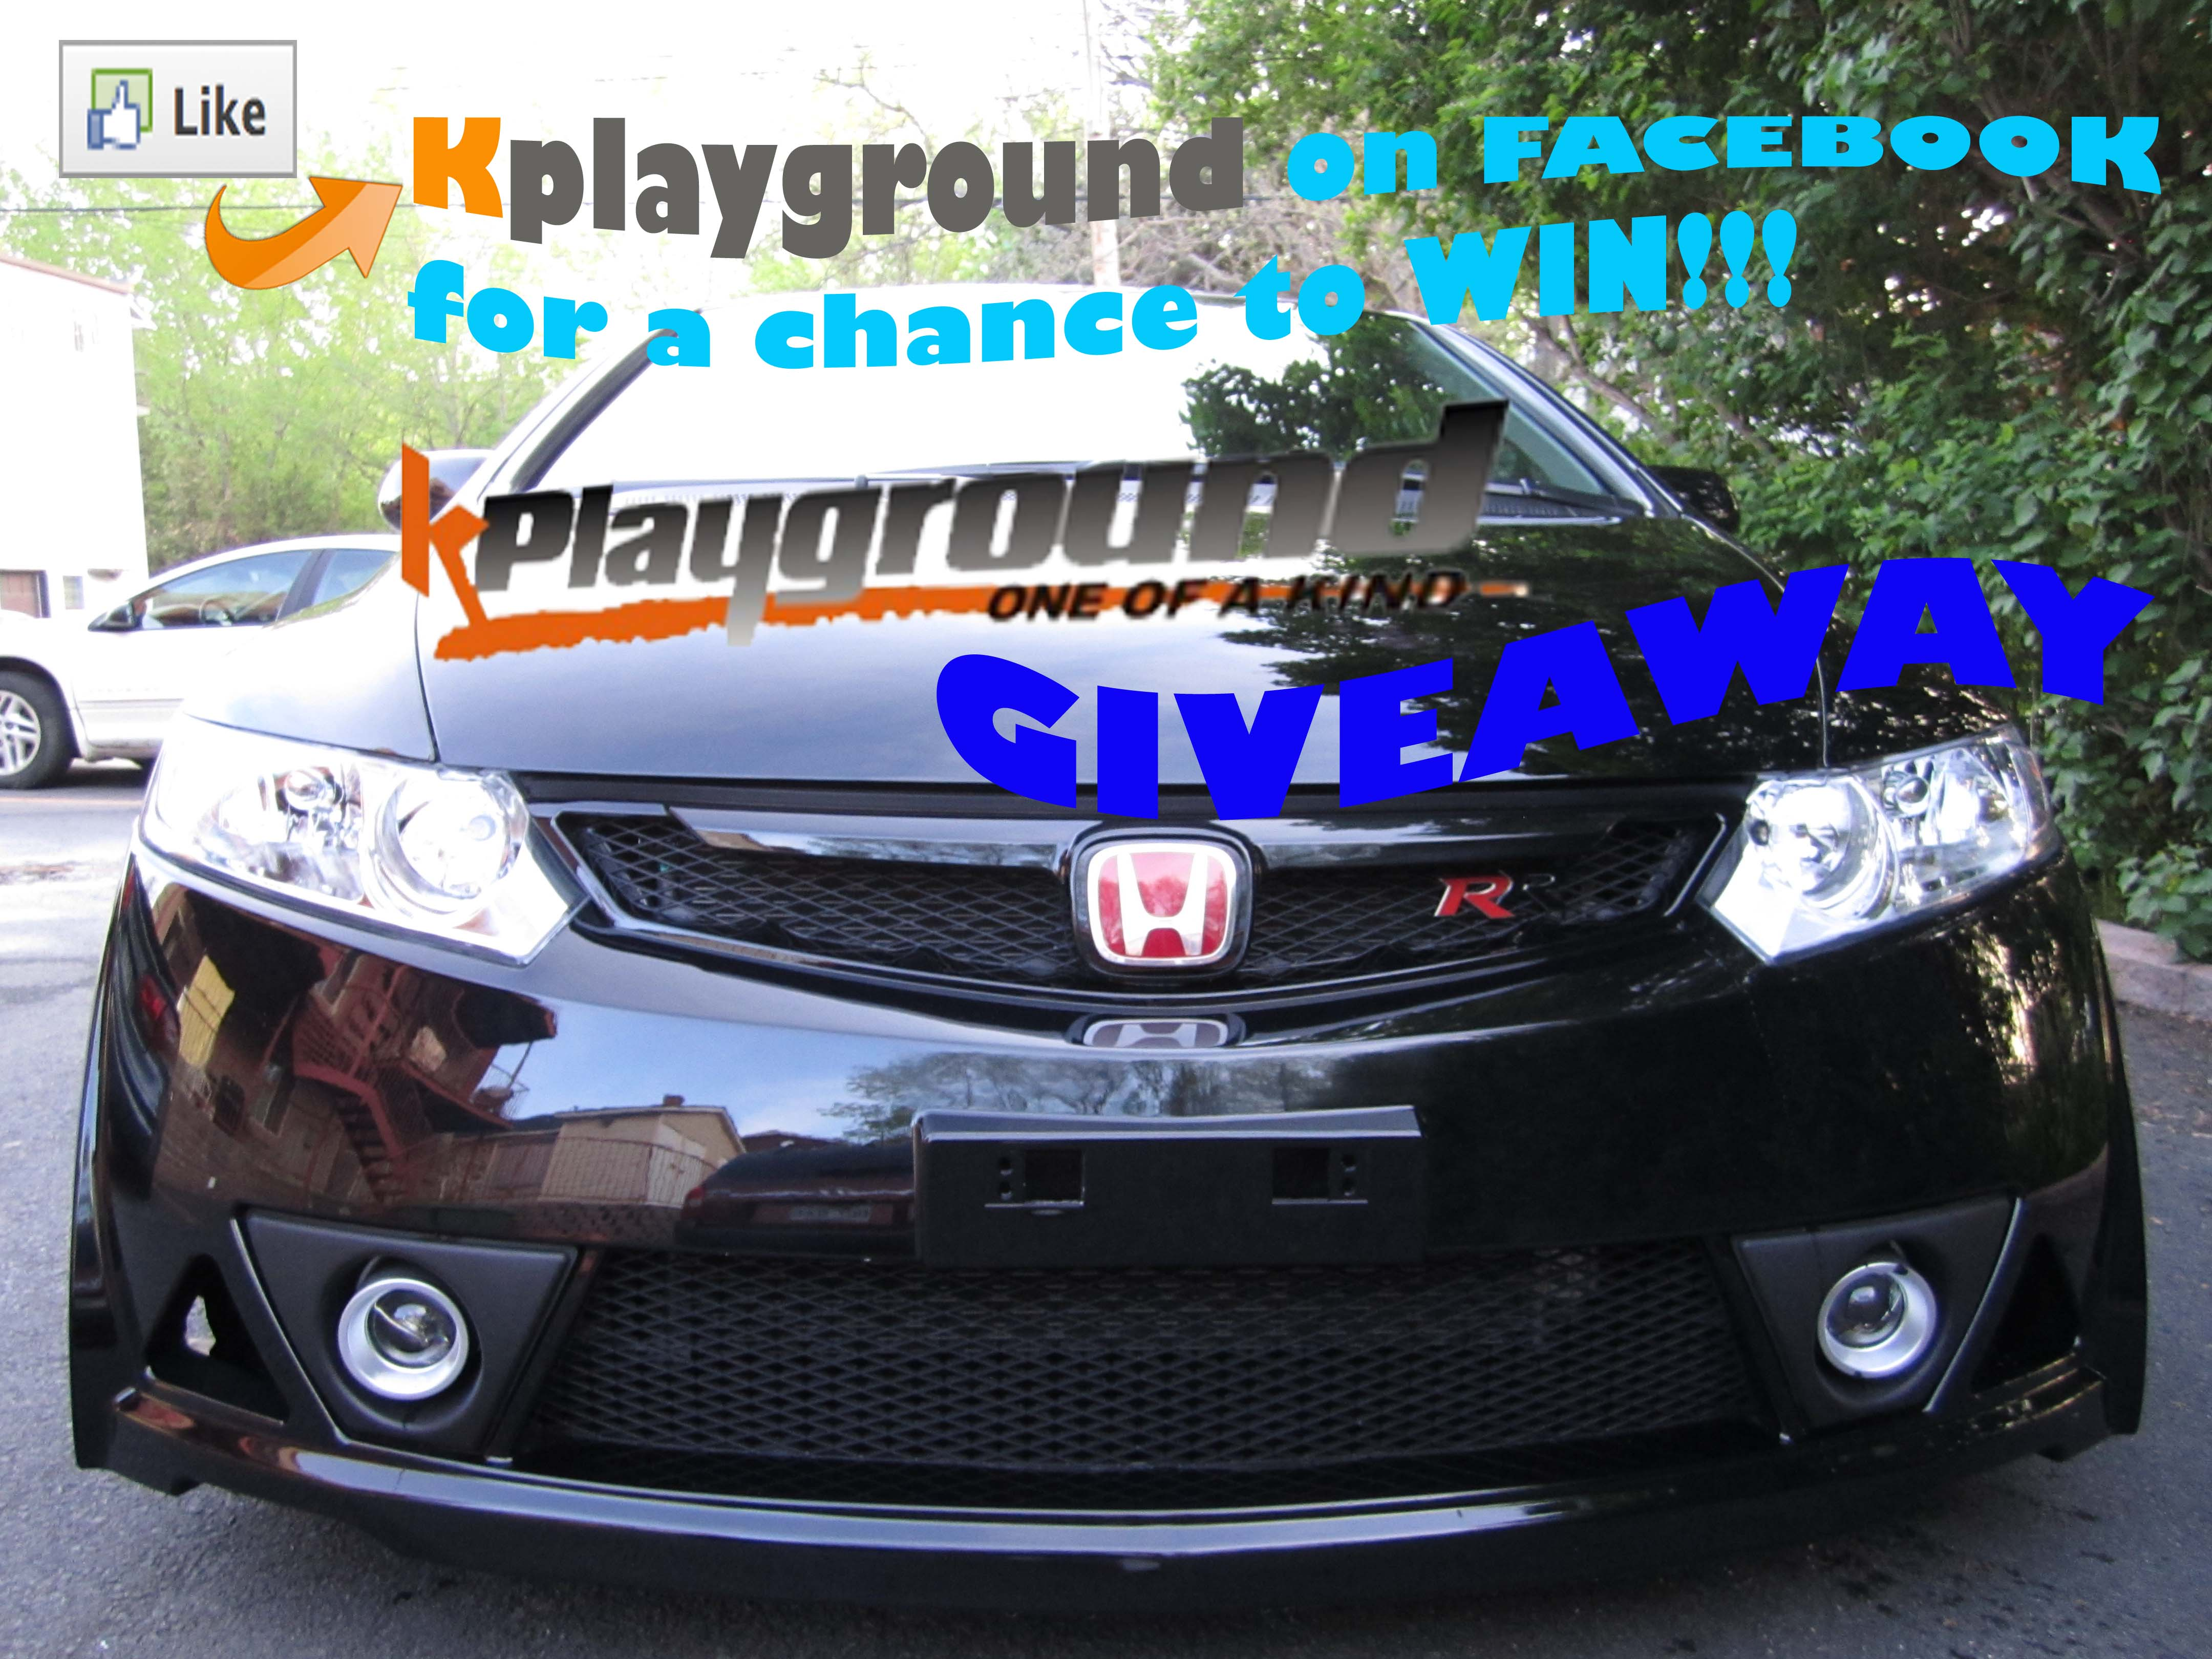 kPLAY 2011 SUMMER Giveaway 2  Kplayground Summer 2011 Giveaway Sweepstakes is NOW ON!!!